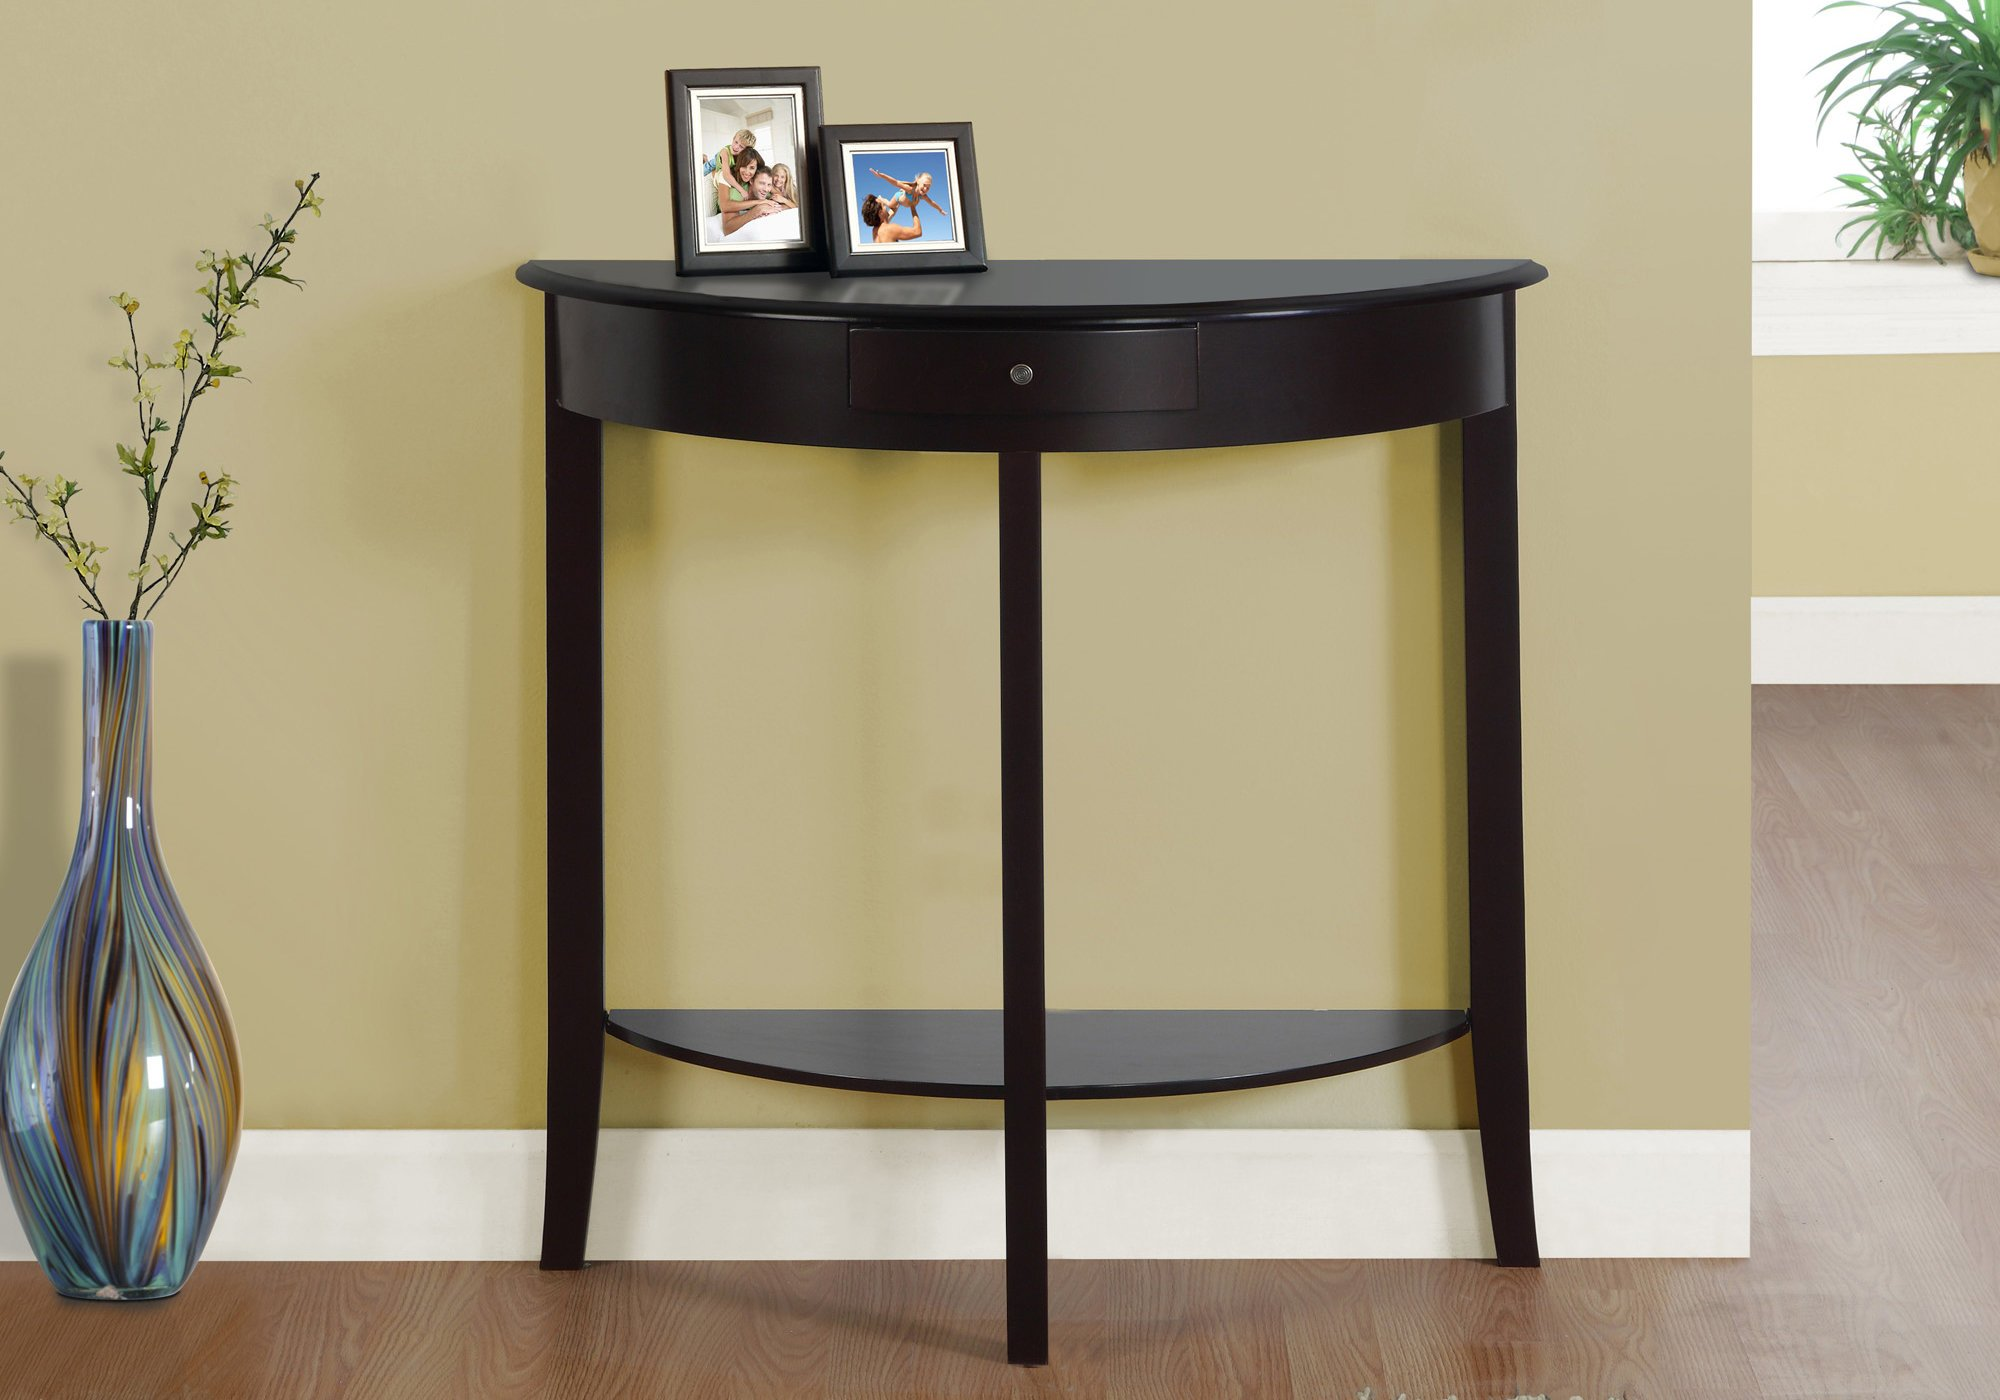 Monarch I 3128 Hall Console Accent Table, 31'', Dark Cherry